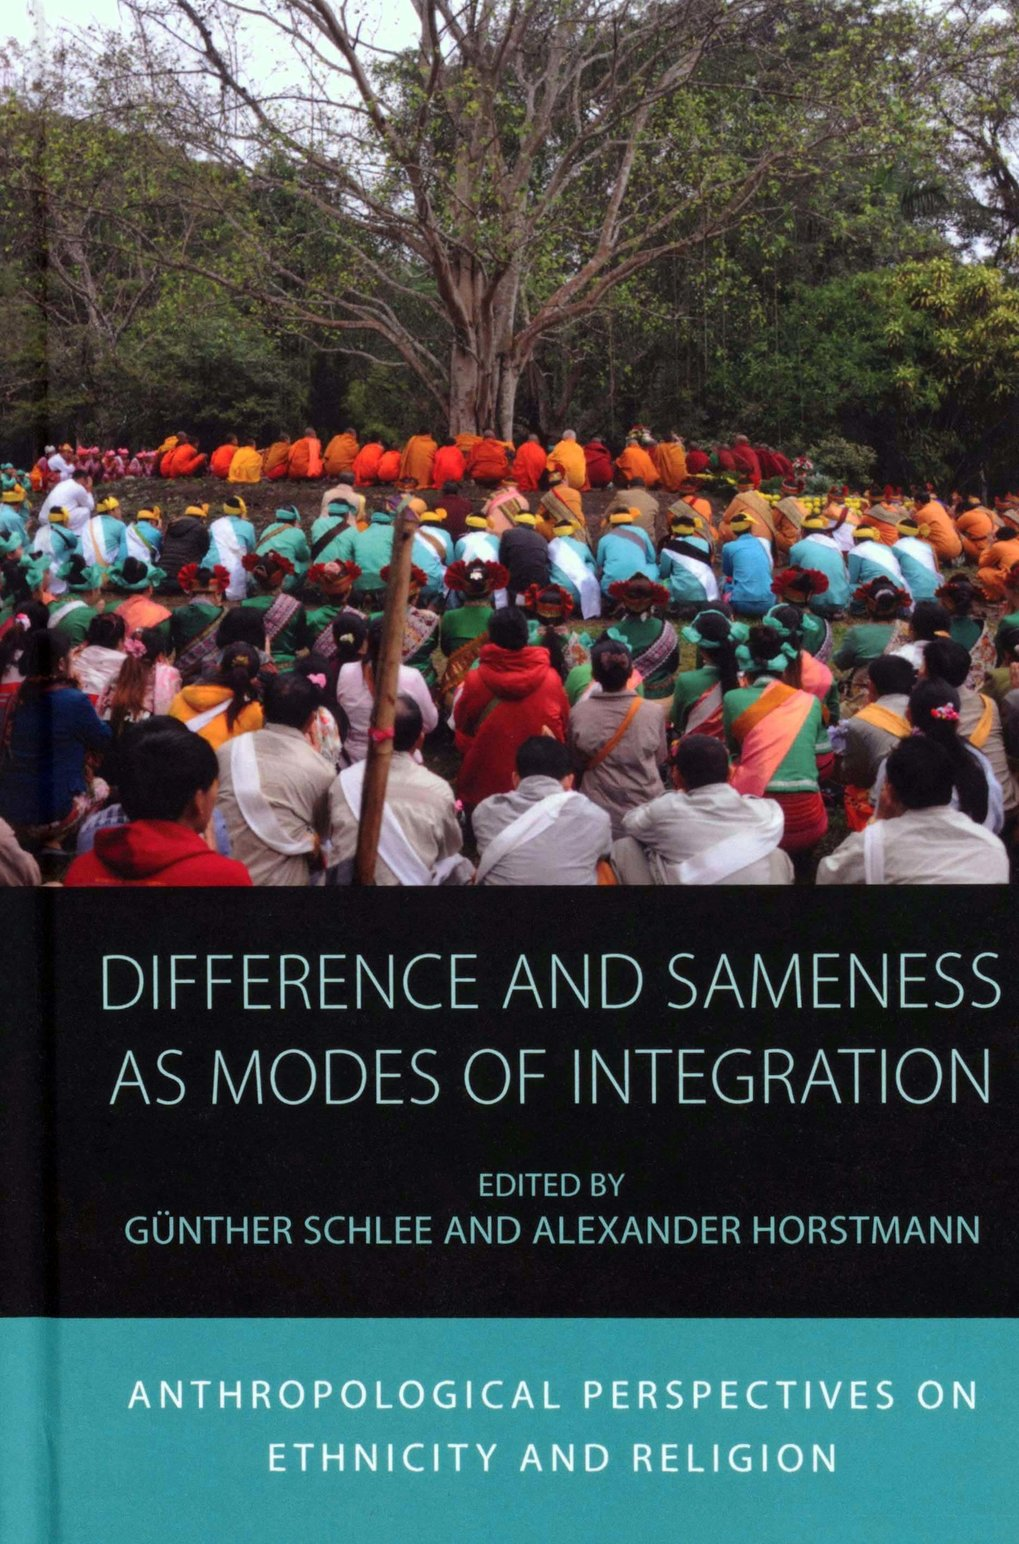 Difference and sameness as modes of integration. Anthropological perspectives on ethnicity and religion